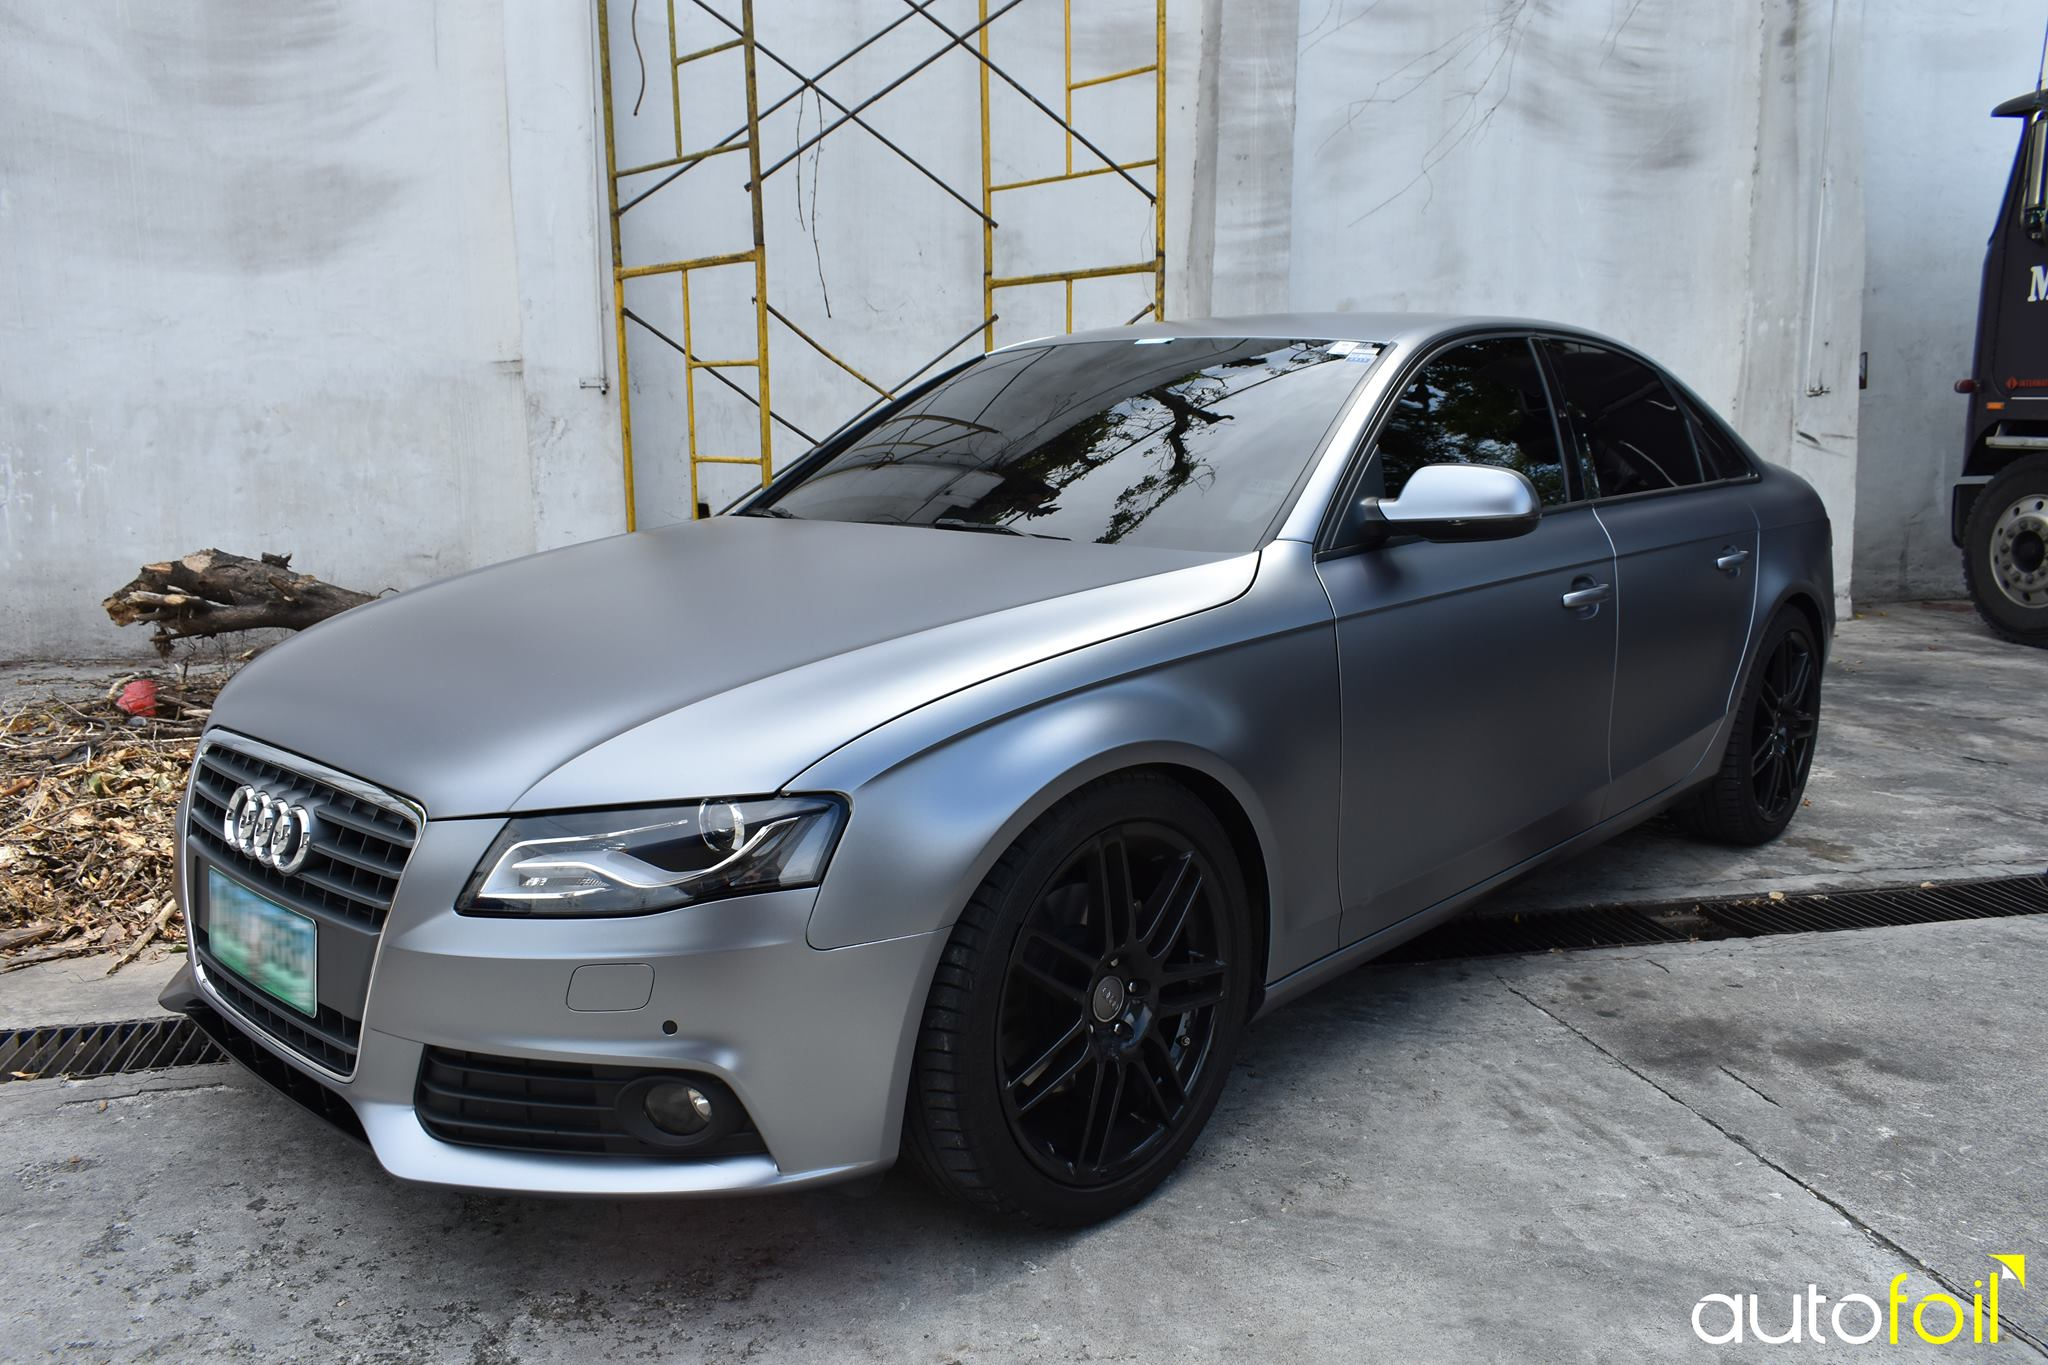 Audi A4 Wrapped In Matte Chrome Silver Autofoil Car Wrapping